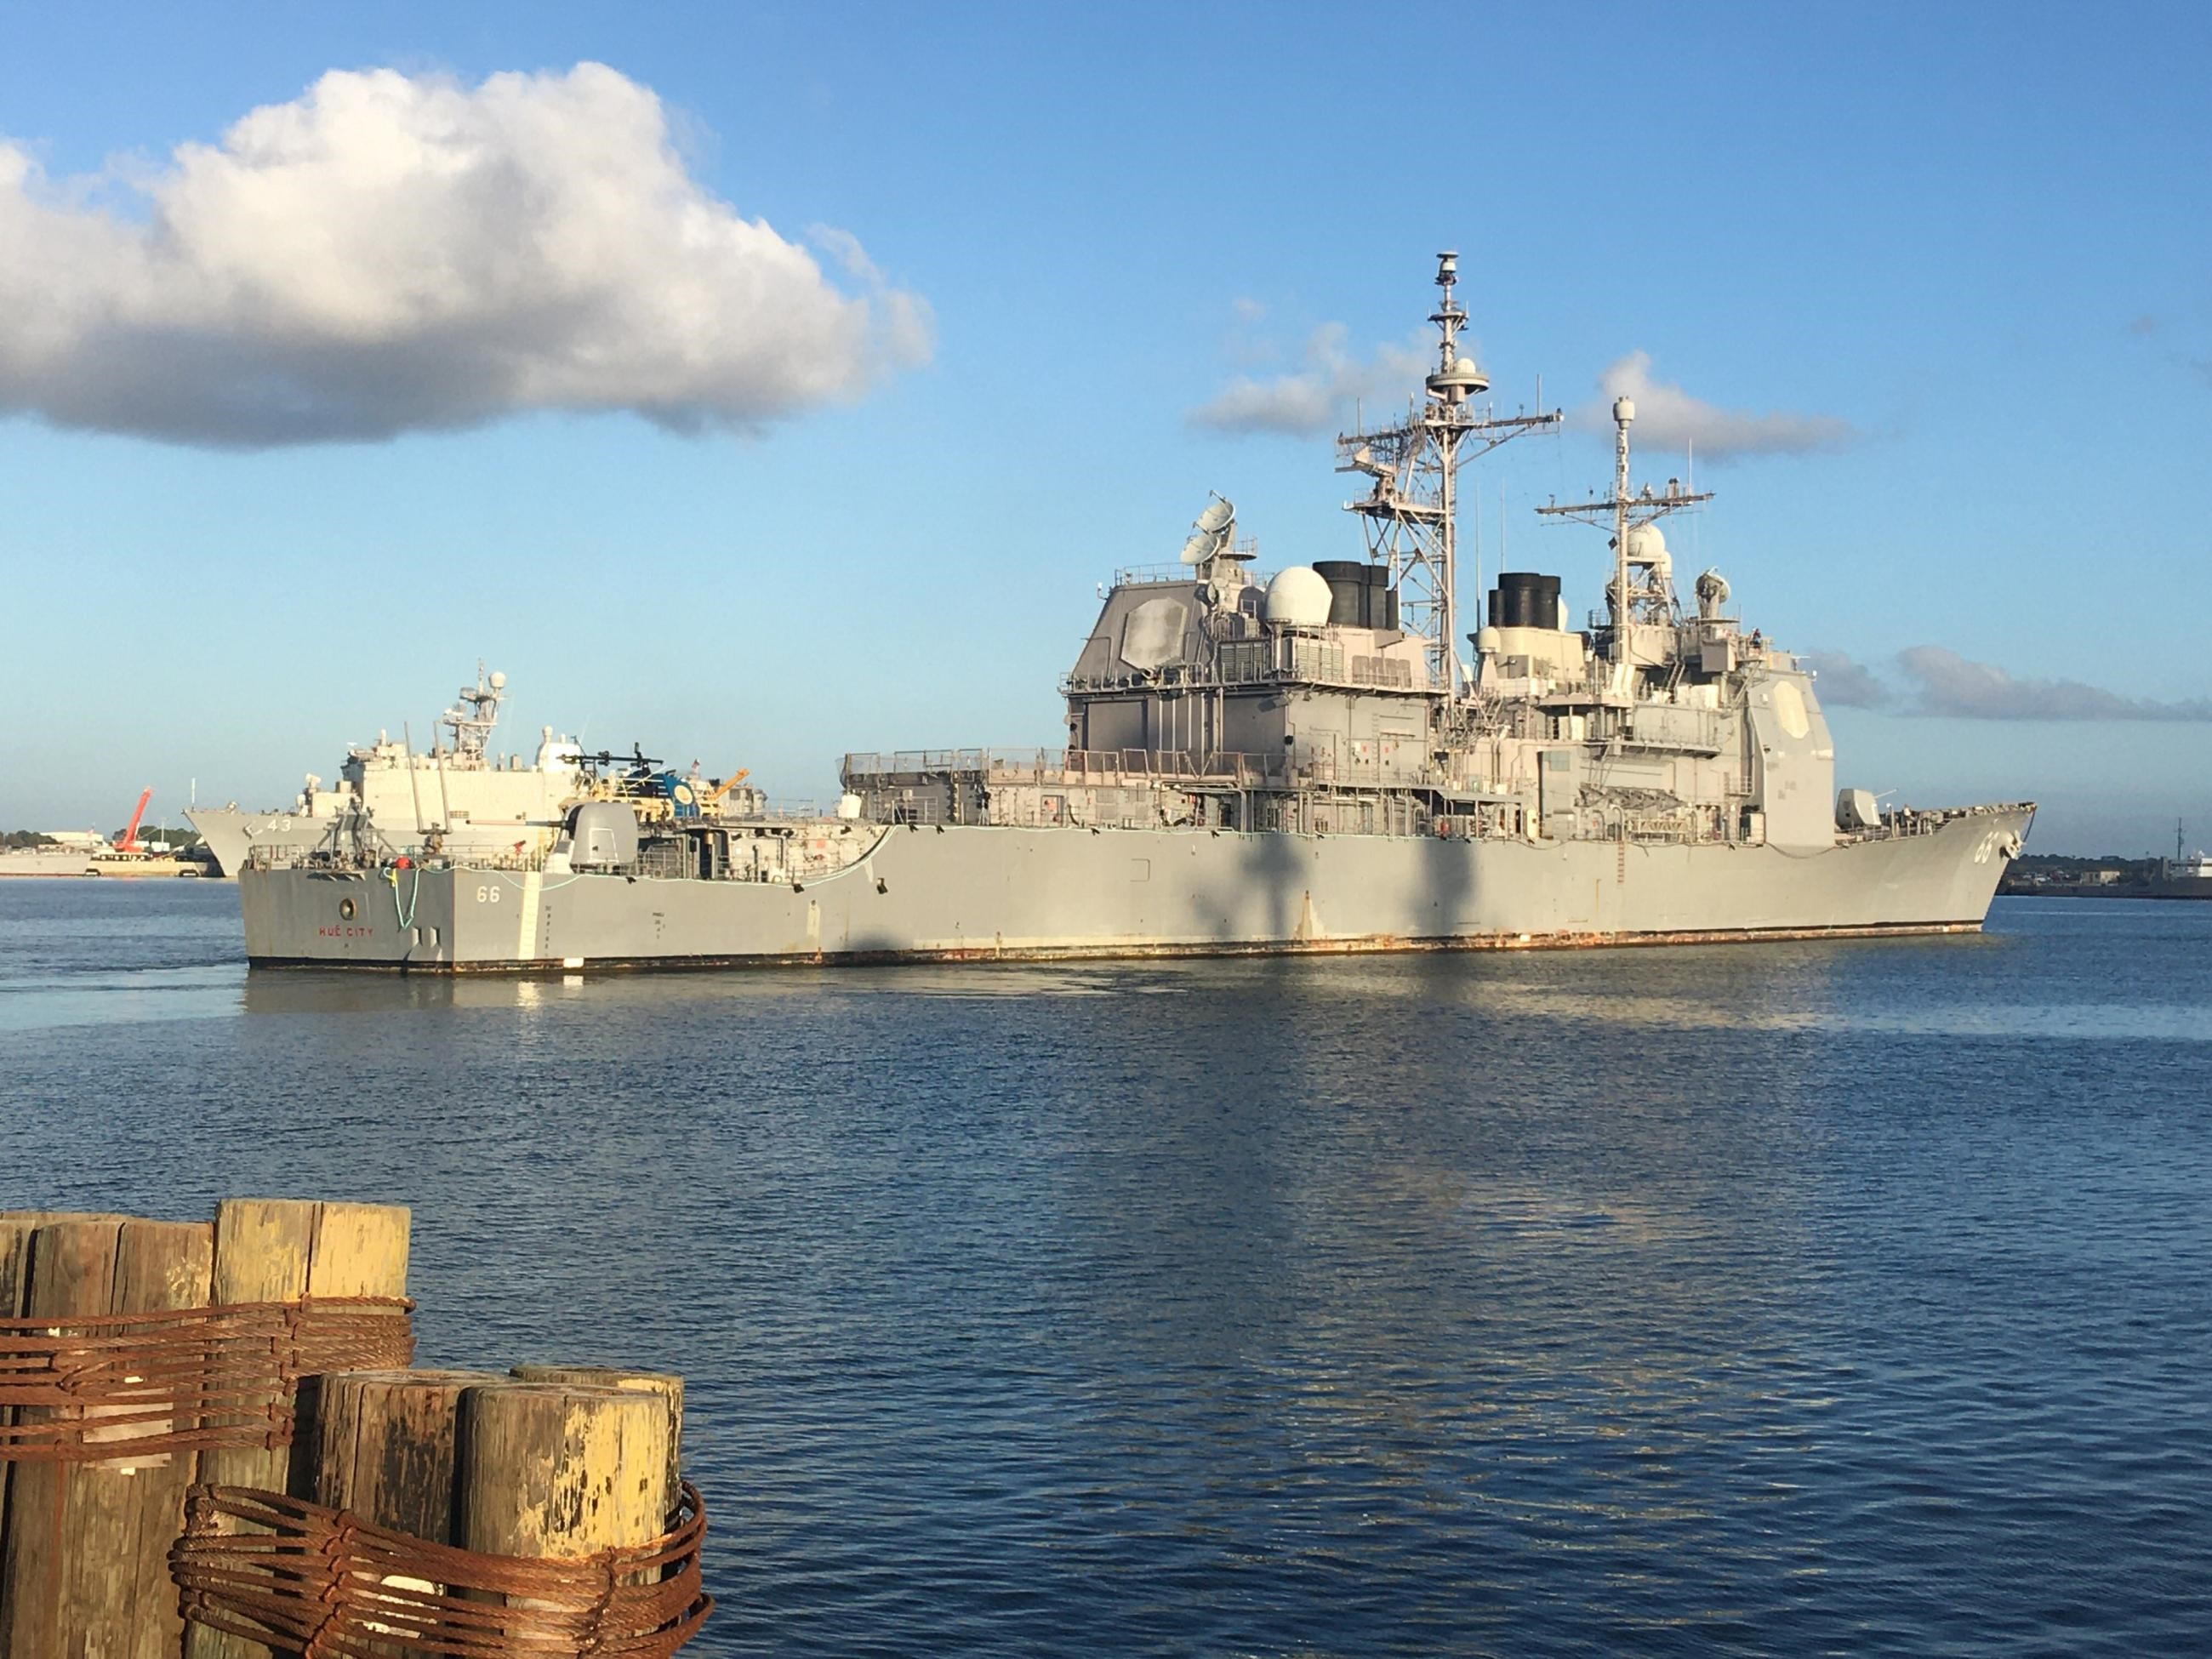 Wittman: Navy Needs Money in its Budget for Modernization, But Not From Cutting Cruisers